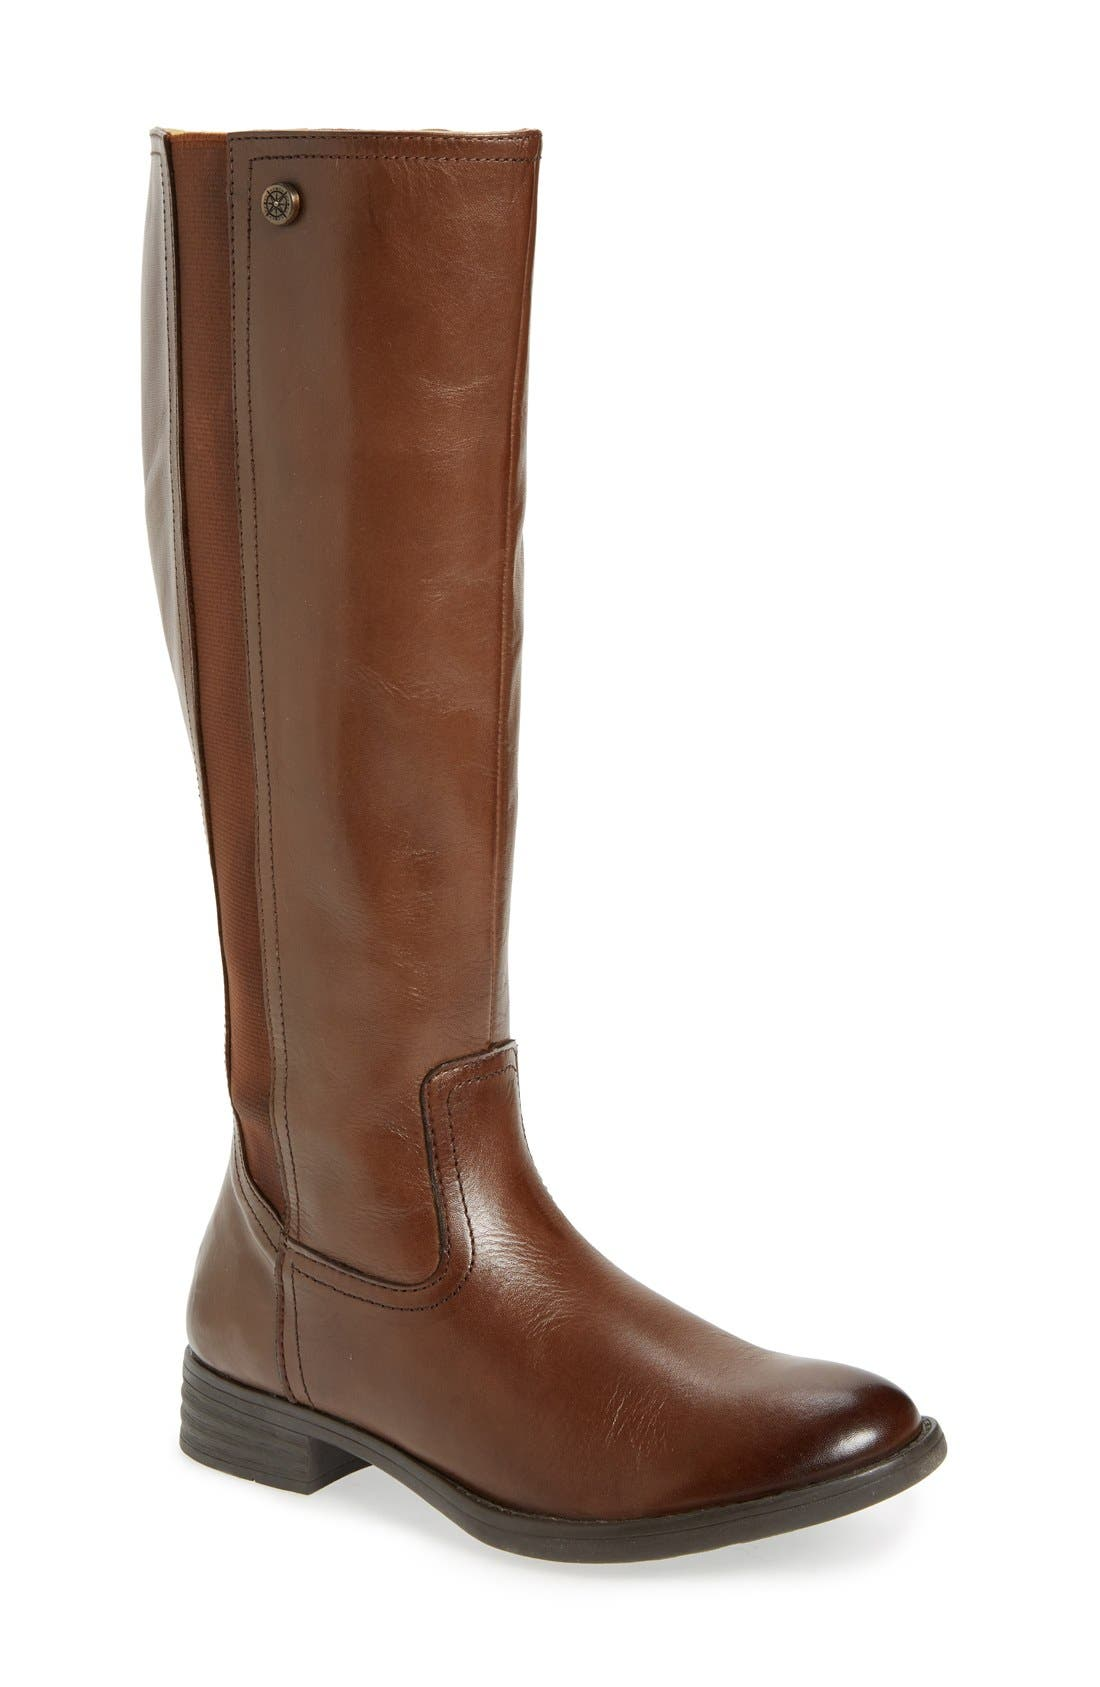 BUSSOLA 'Tanga' Riding Boot